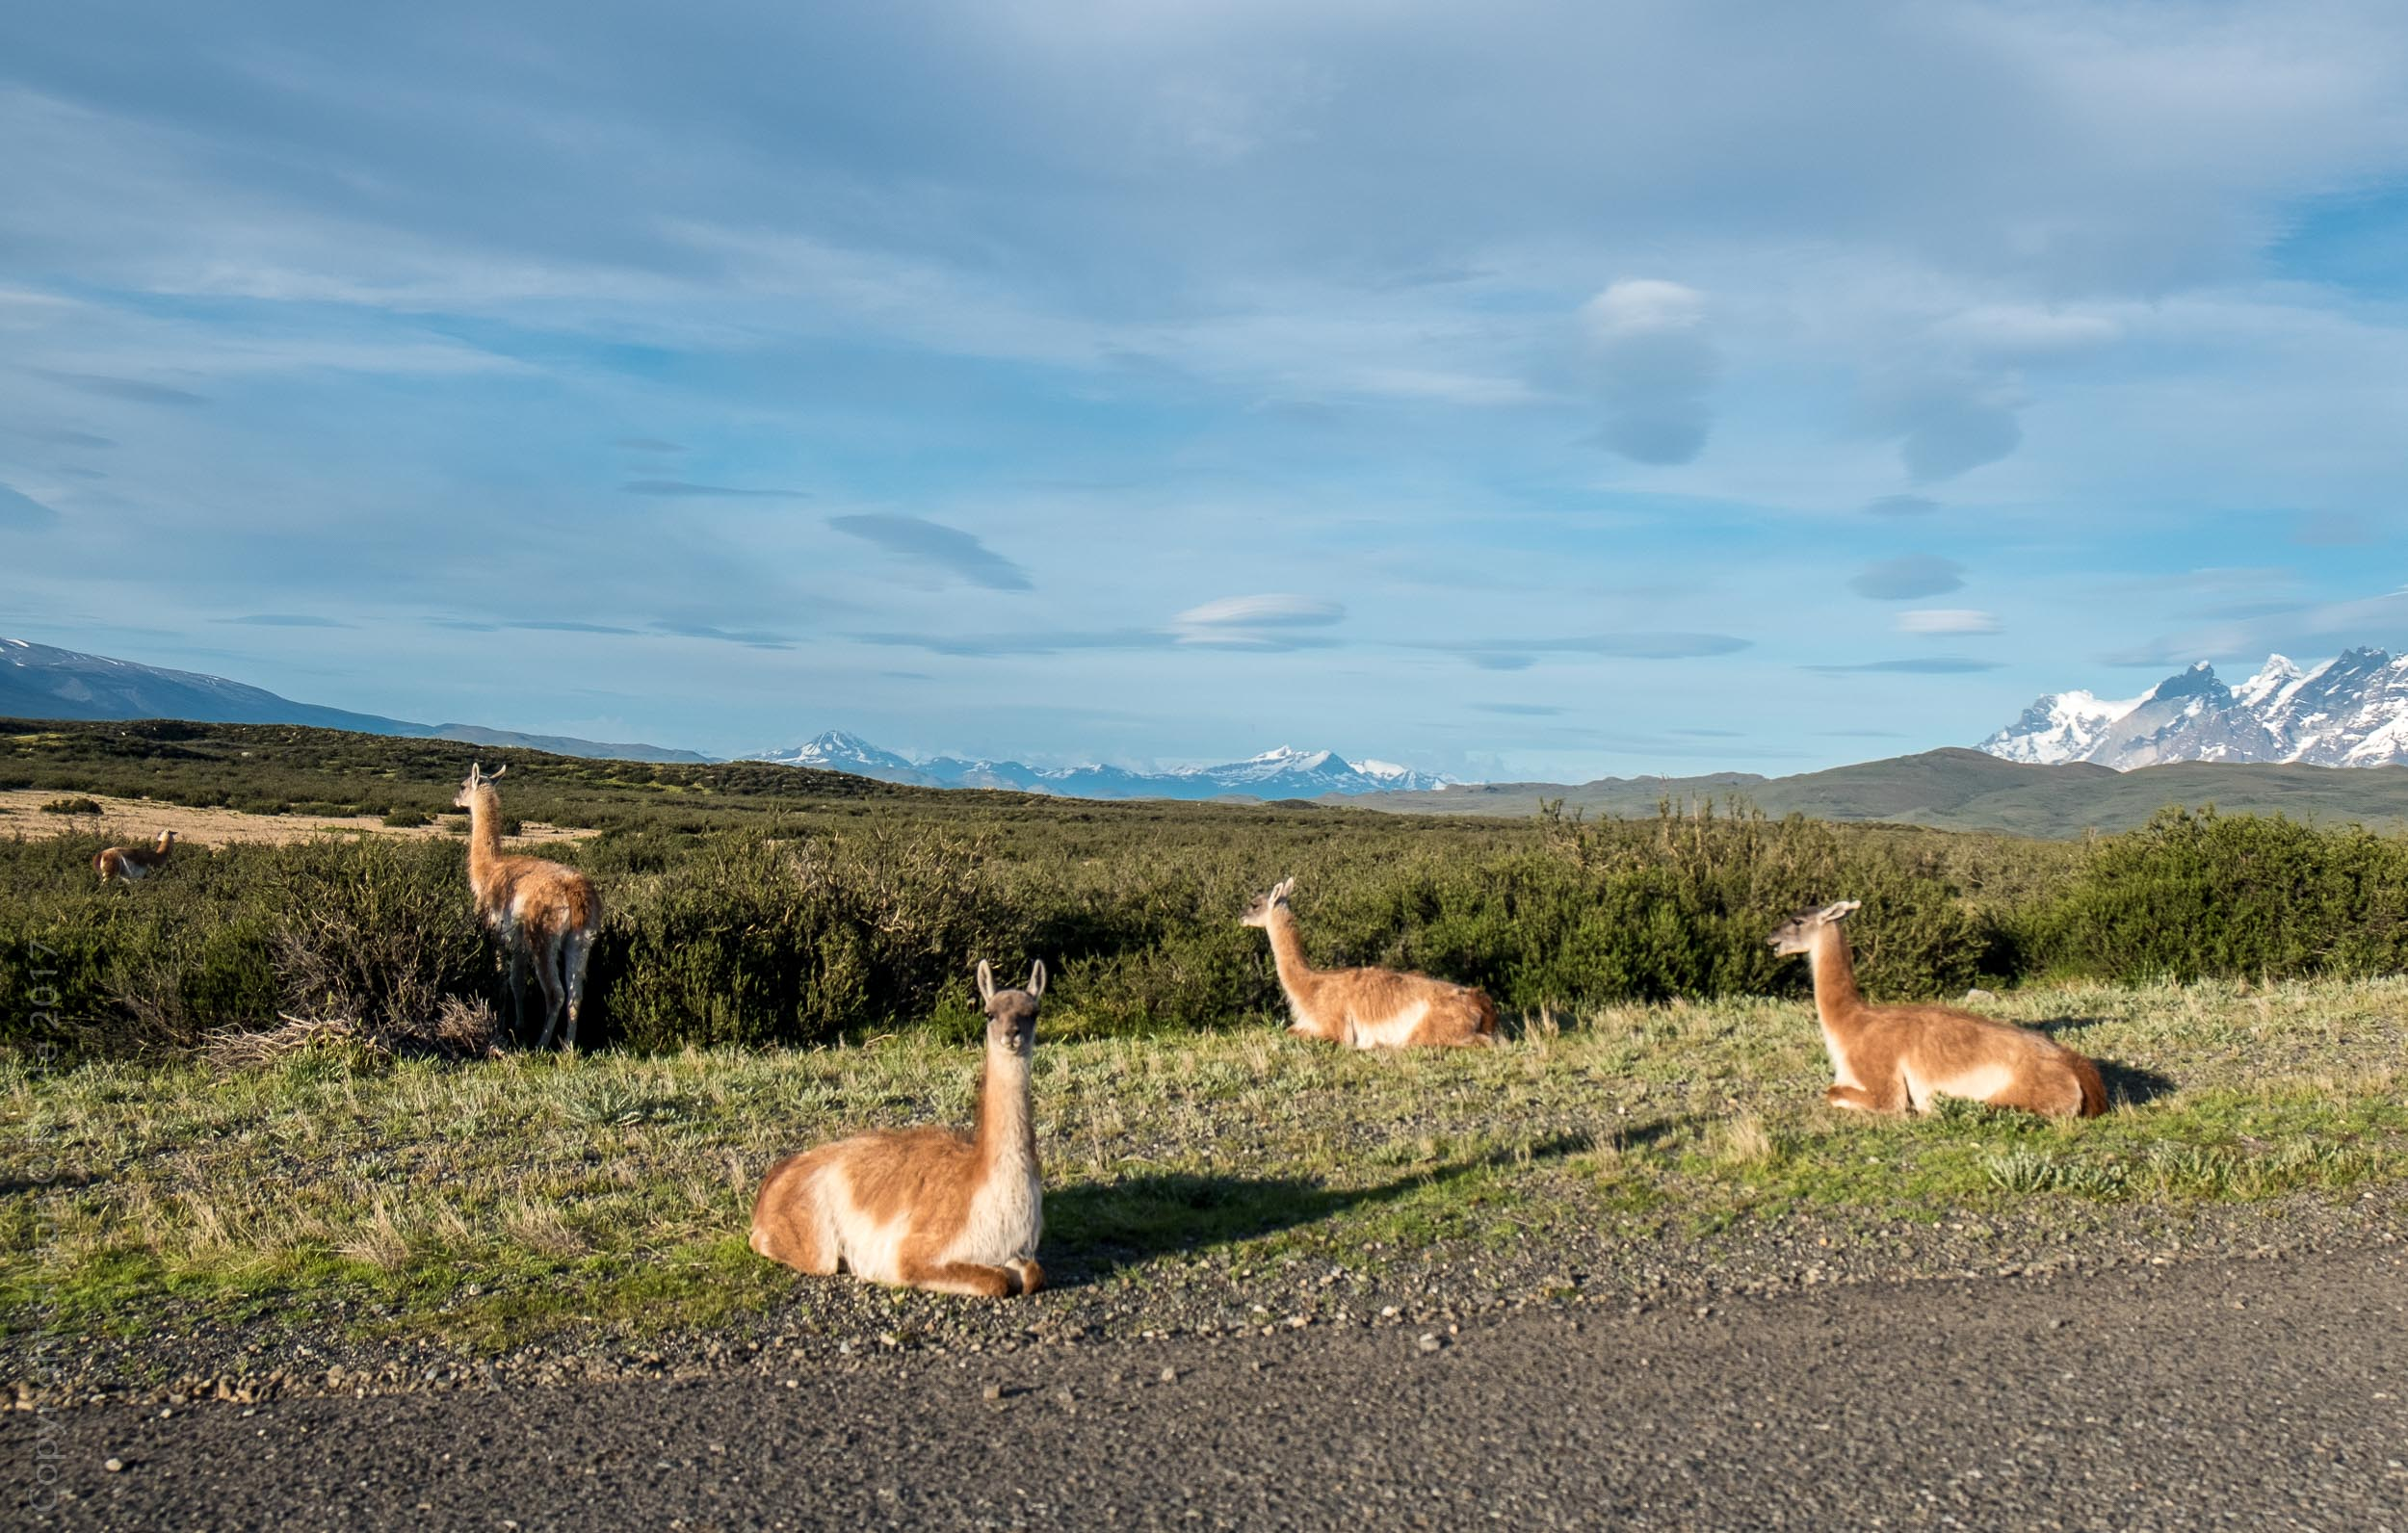 Guanacos lounging by the roadside